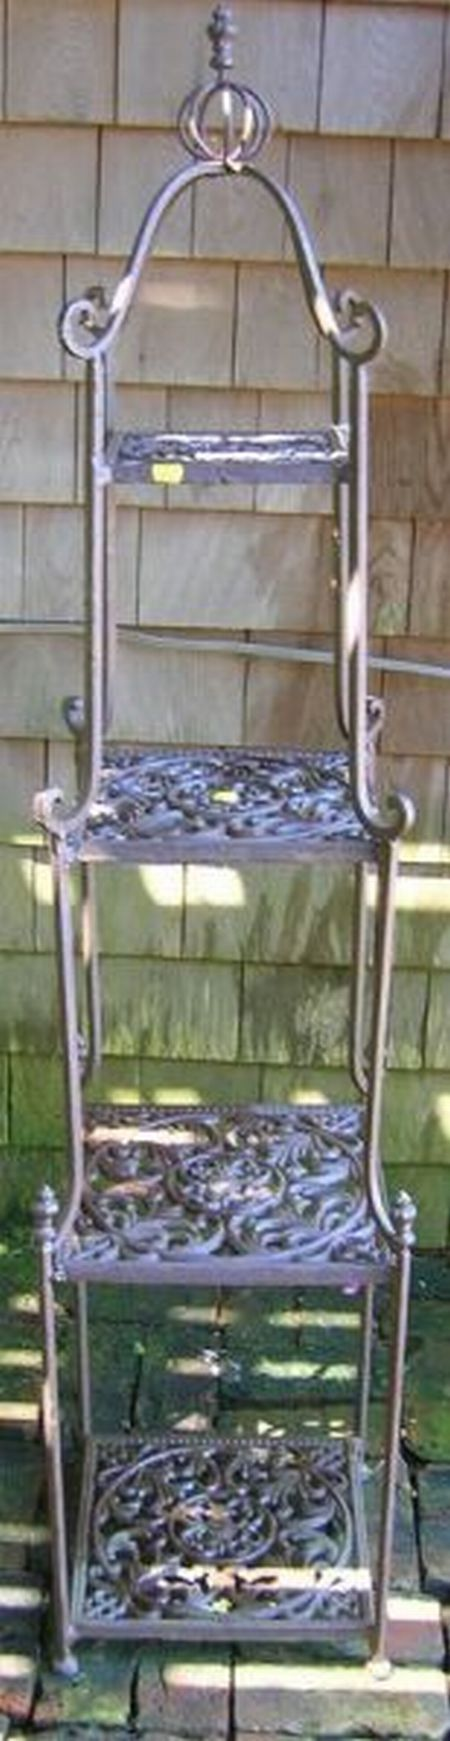 Cast Iron Four-Tier Garden Etagere.